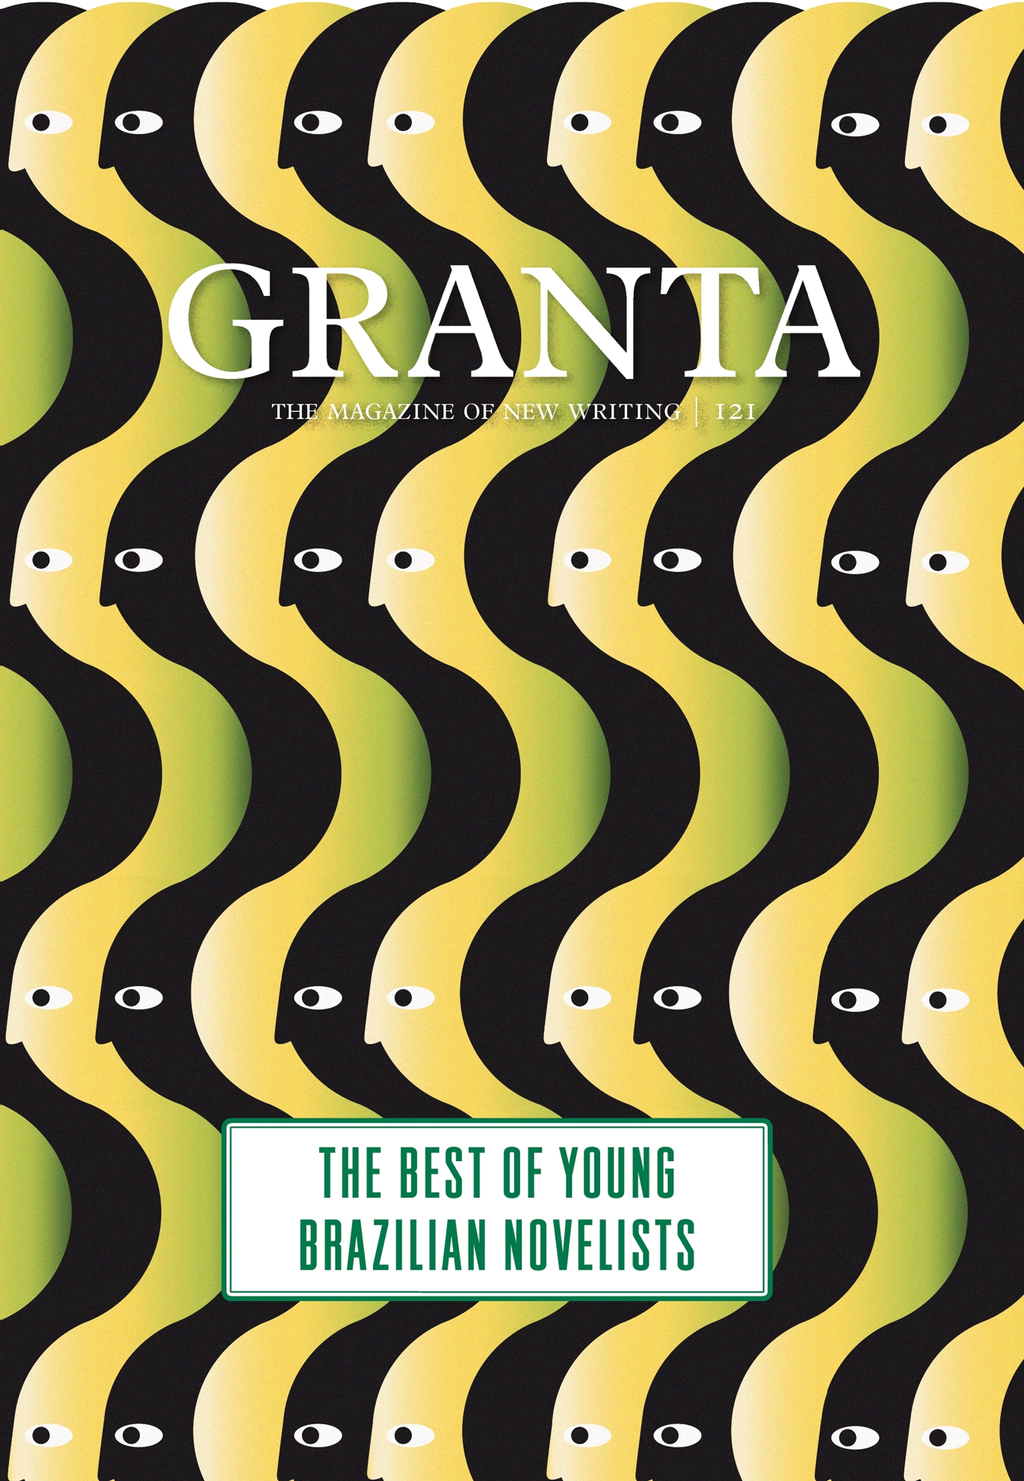 Granta 121: Best of Young Brazilian Novelists